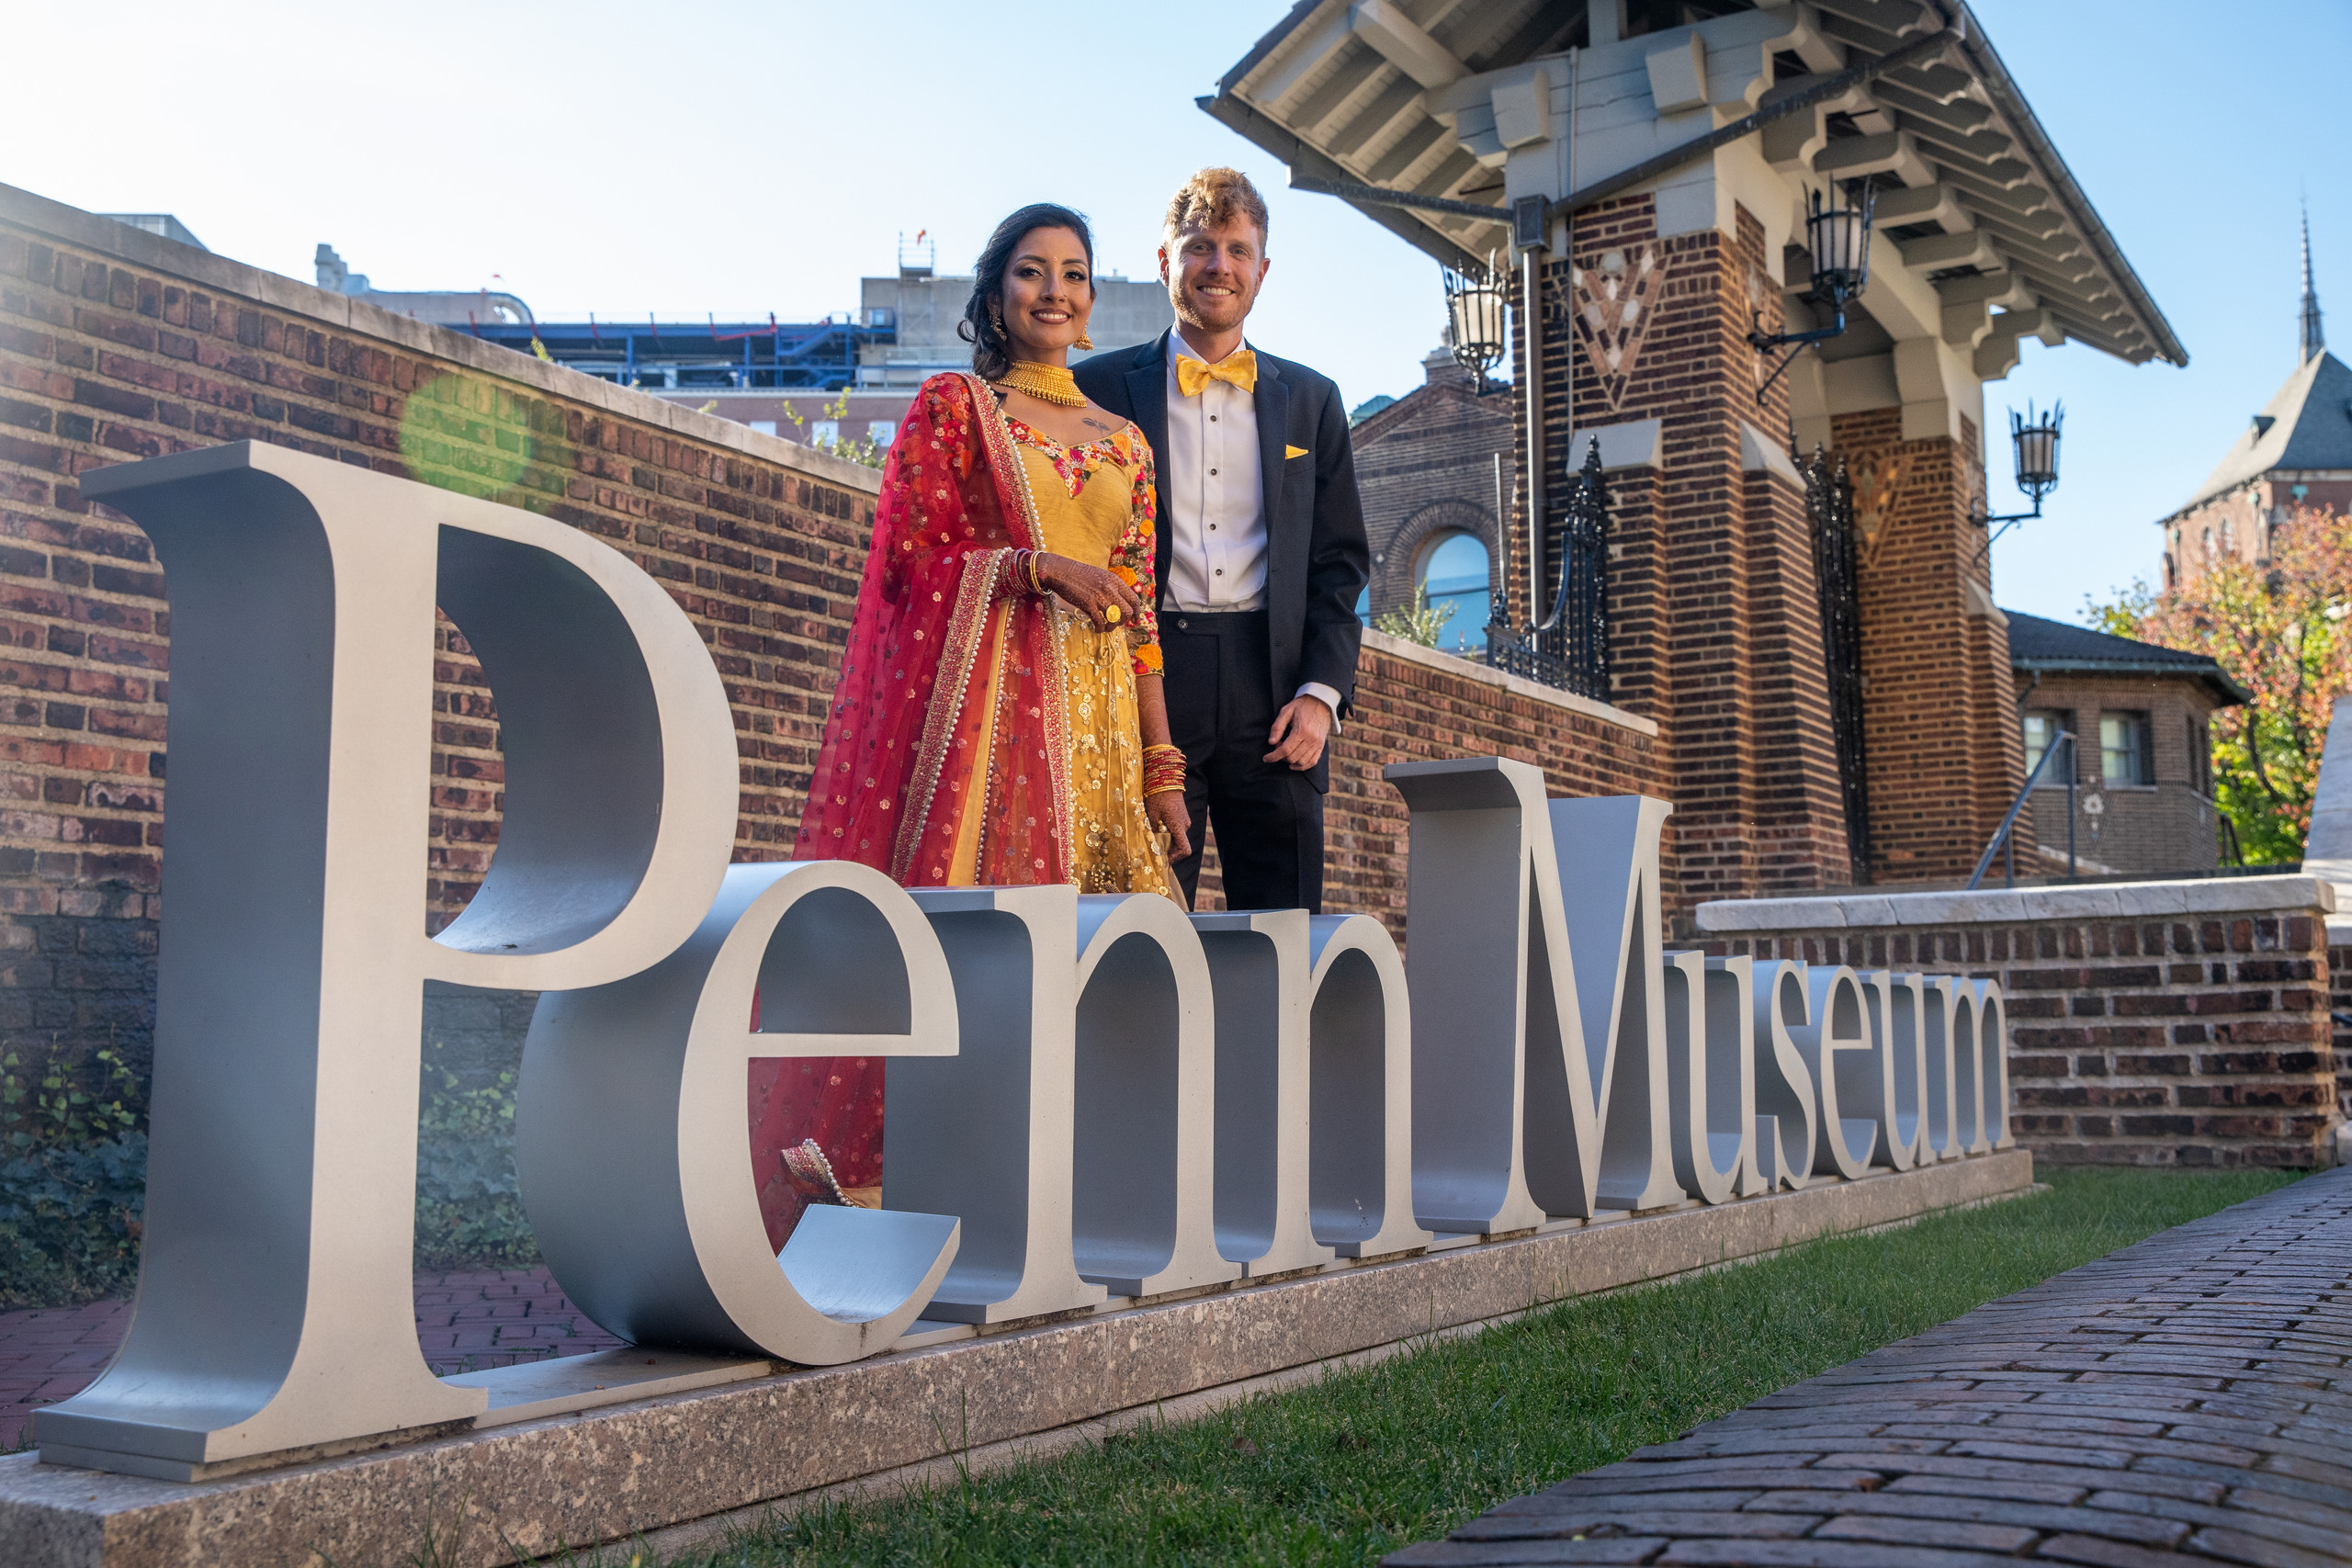 The bride and groom pose in front of the venue sign before the wedding ceremony at the Penn Museum in Philadelphia, Pennsylvania.